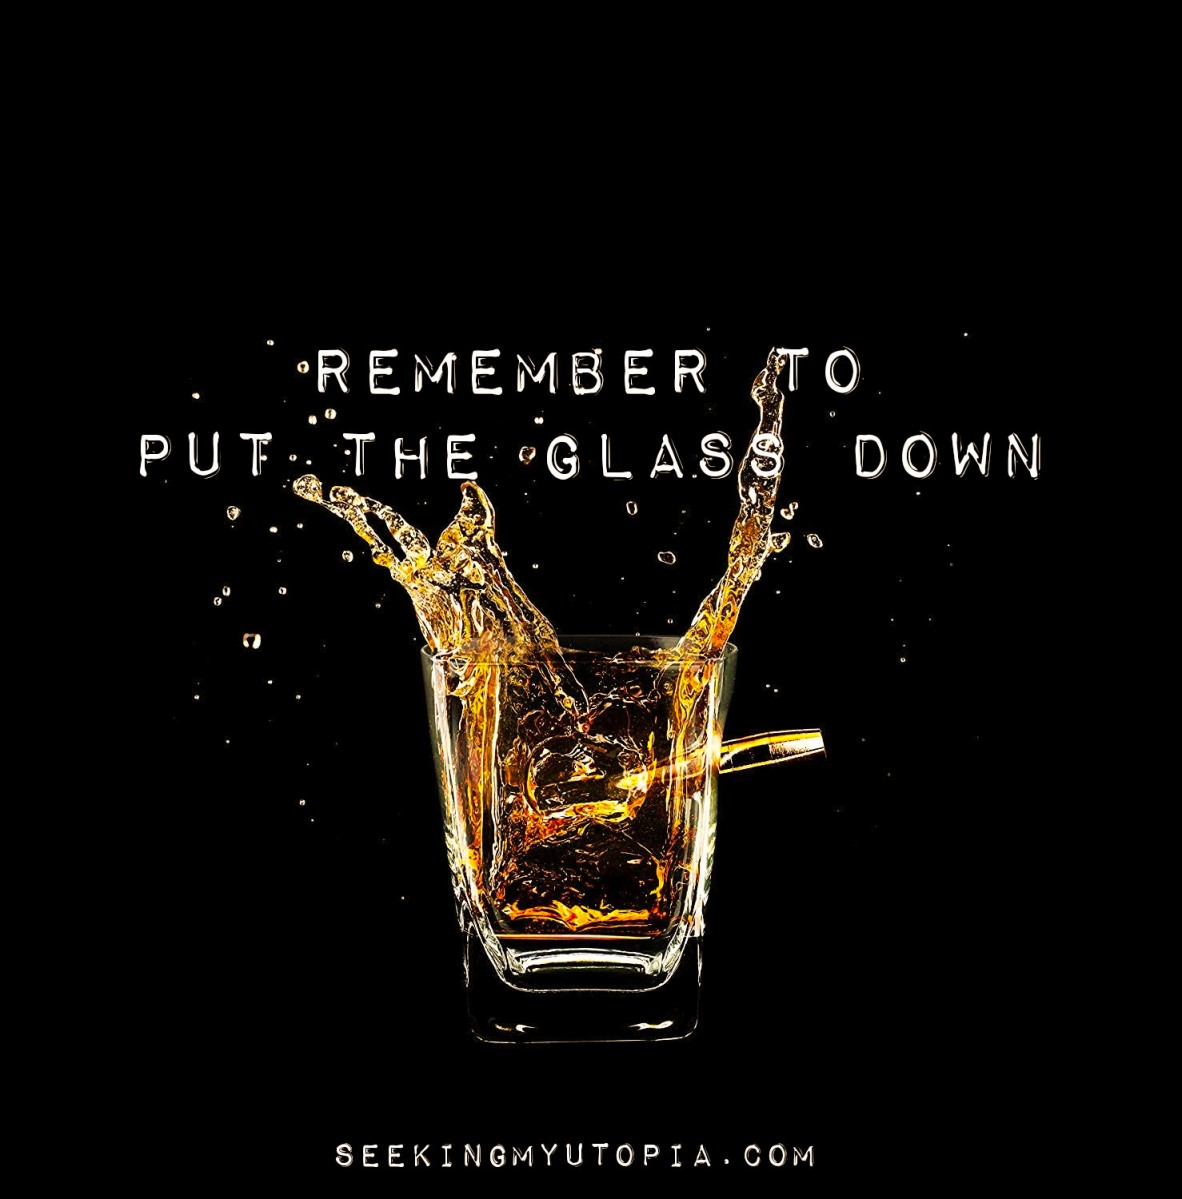 Can You Remember to Put the Glass Down?